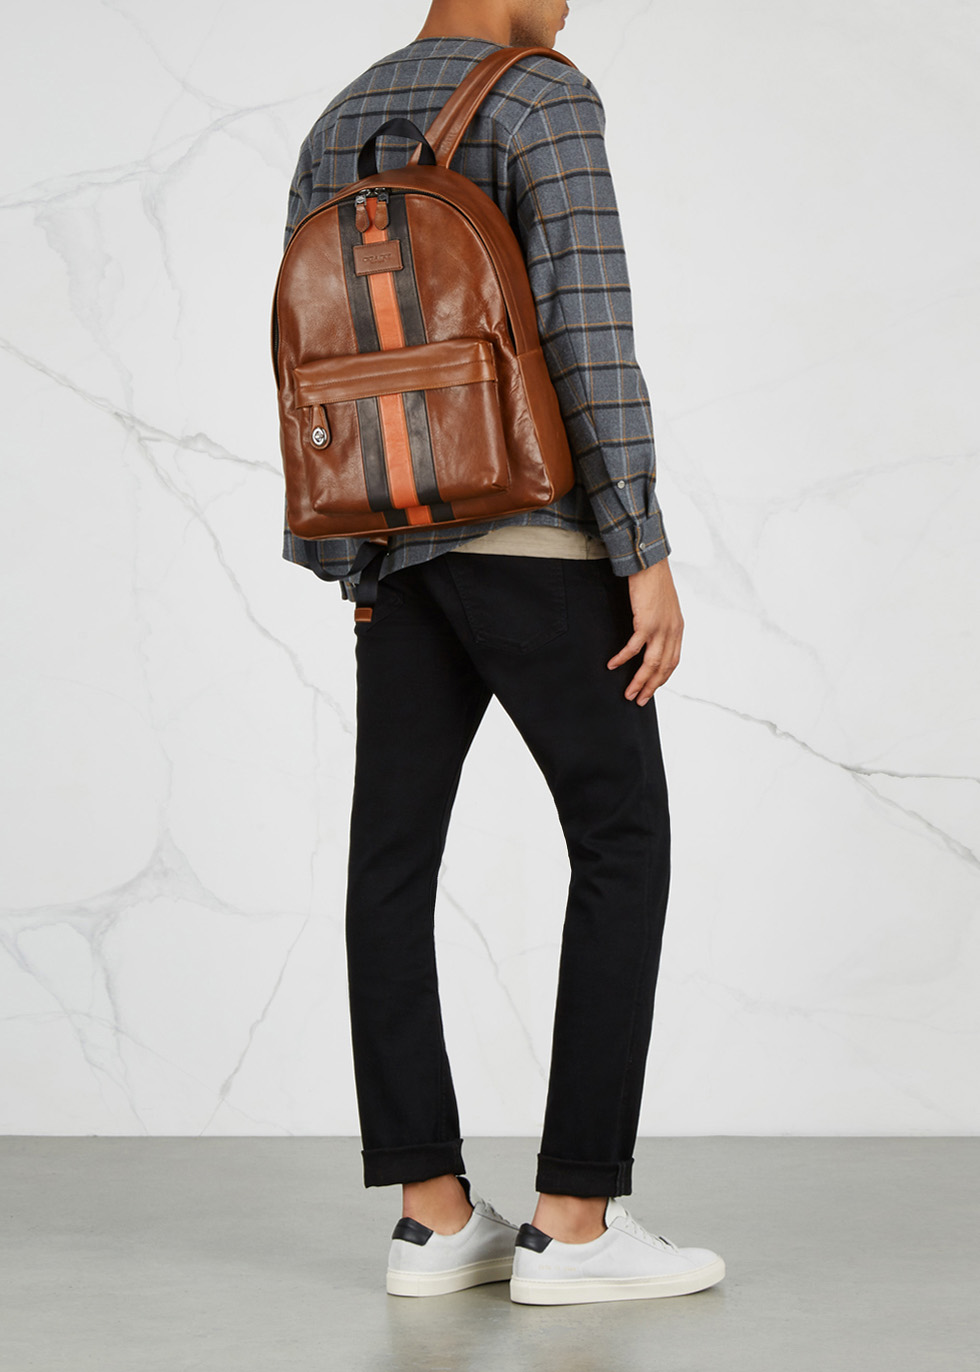 65d2250f750b Coach Campus brown leather backpack - Harvey Nichols